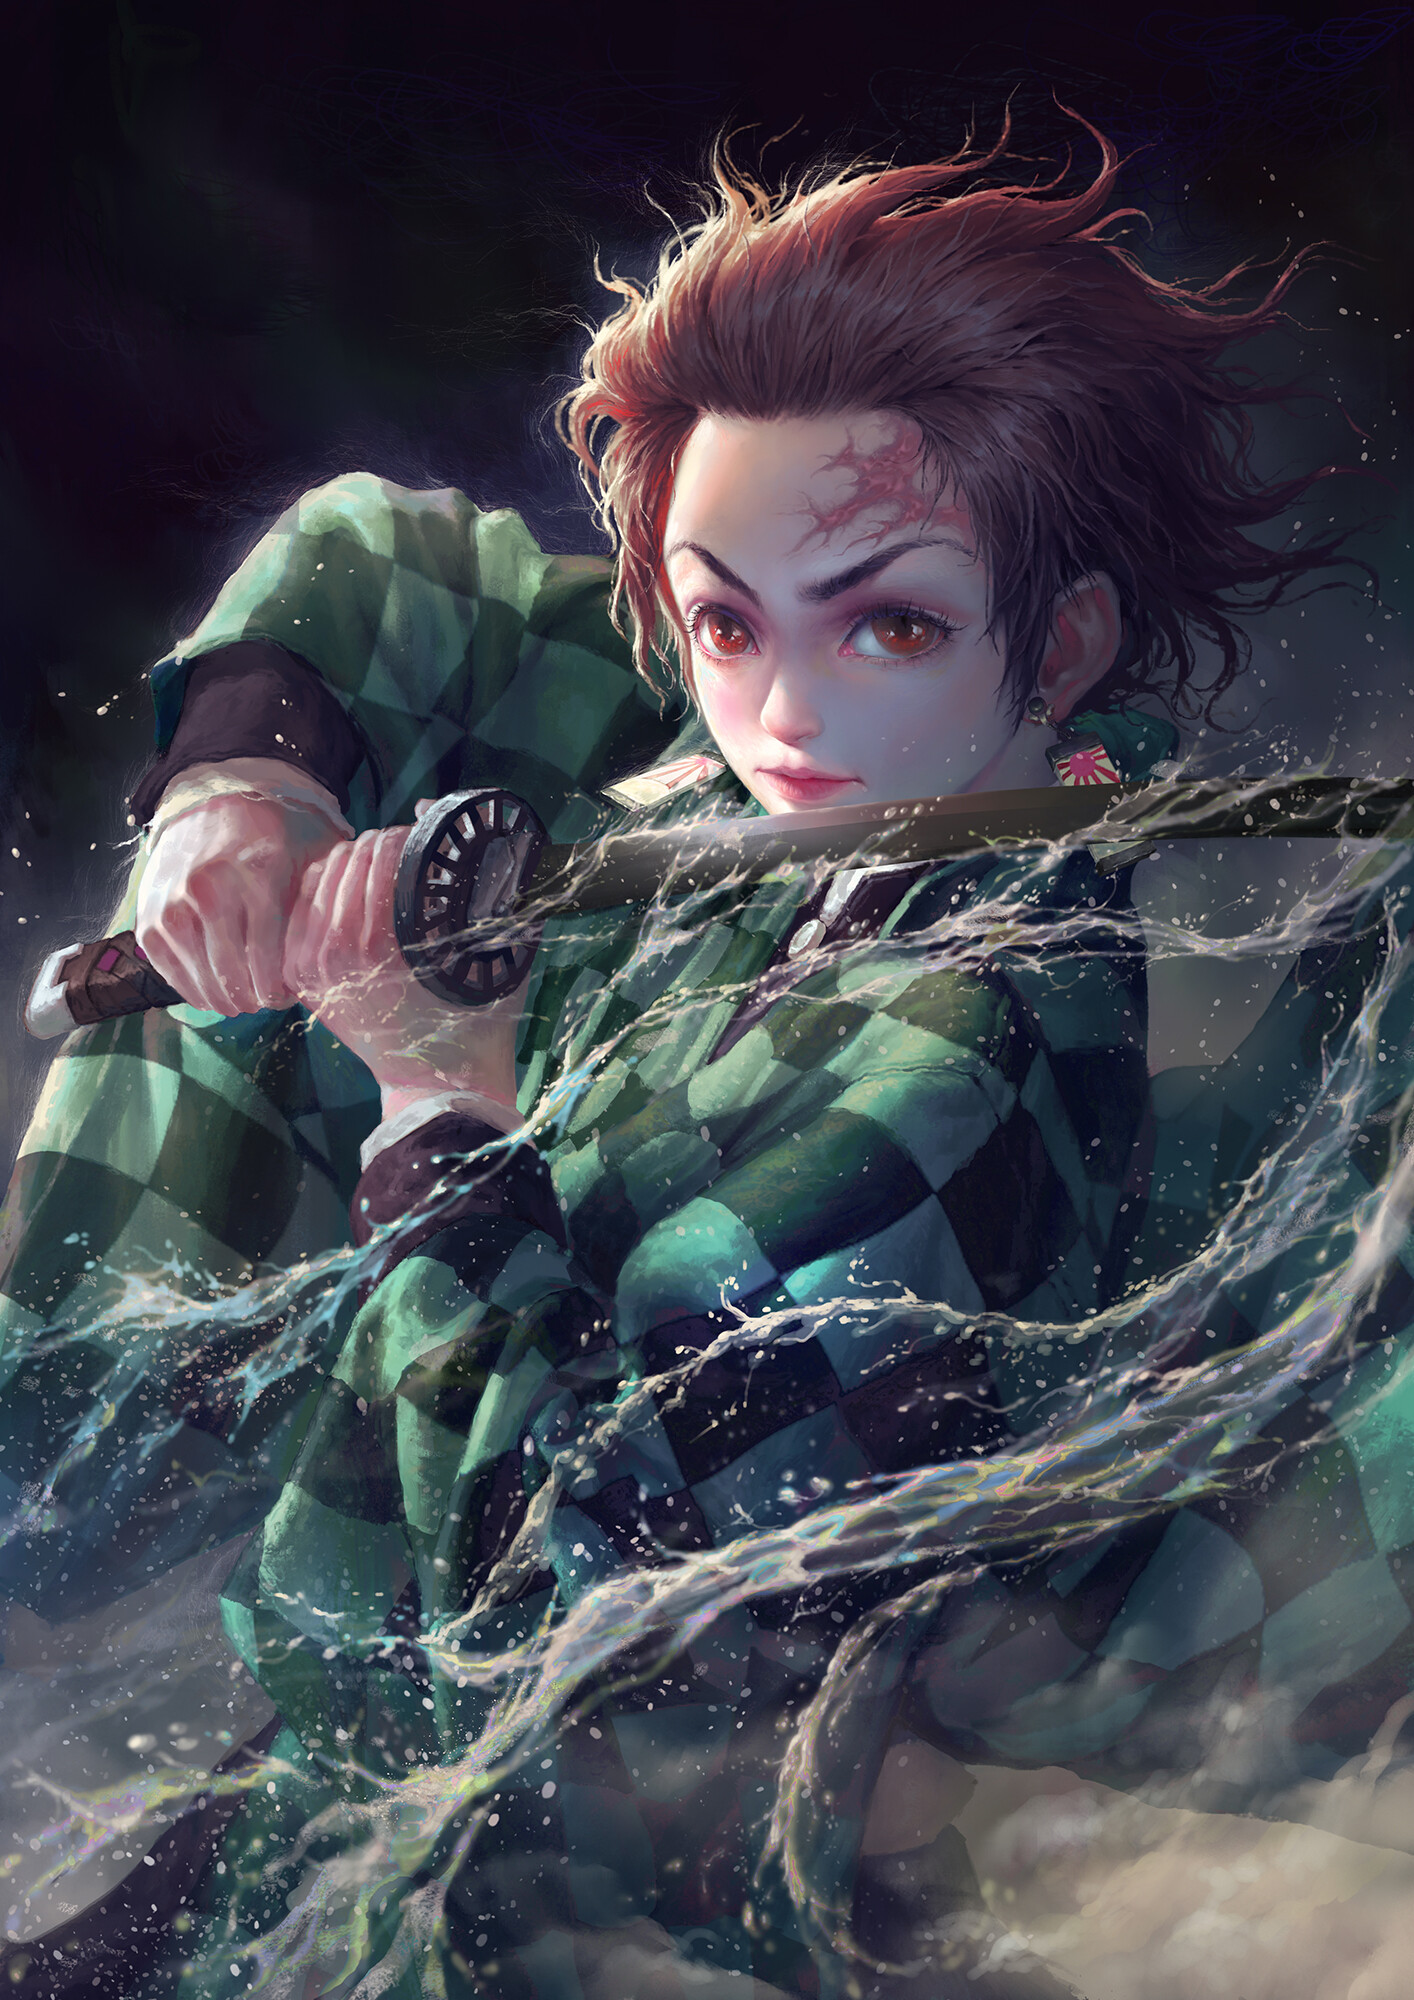 Katana Kimetsu No Yaiba Portrait Display Water Digital Art Digital Painting Fan Art Artwork Anime Dr 1414x2000